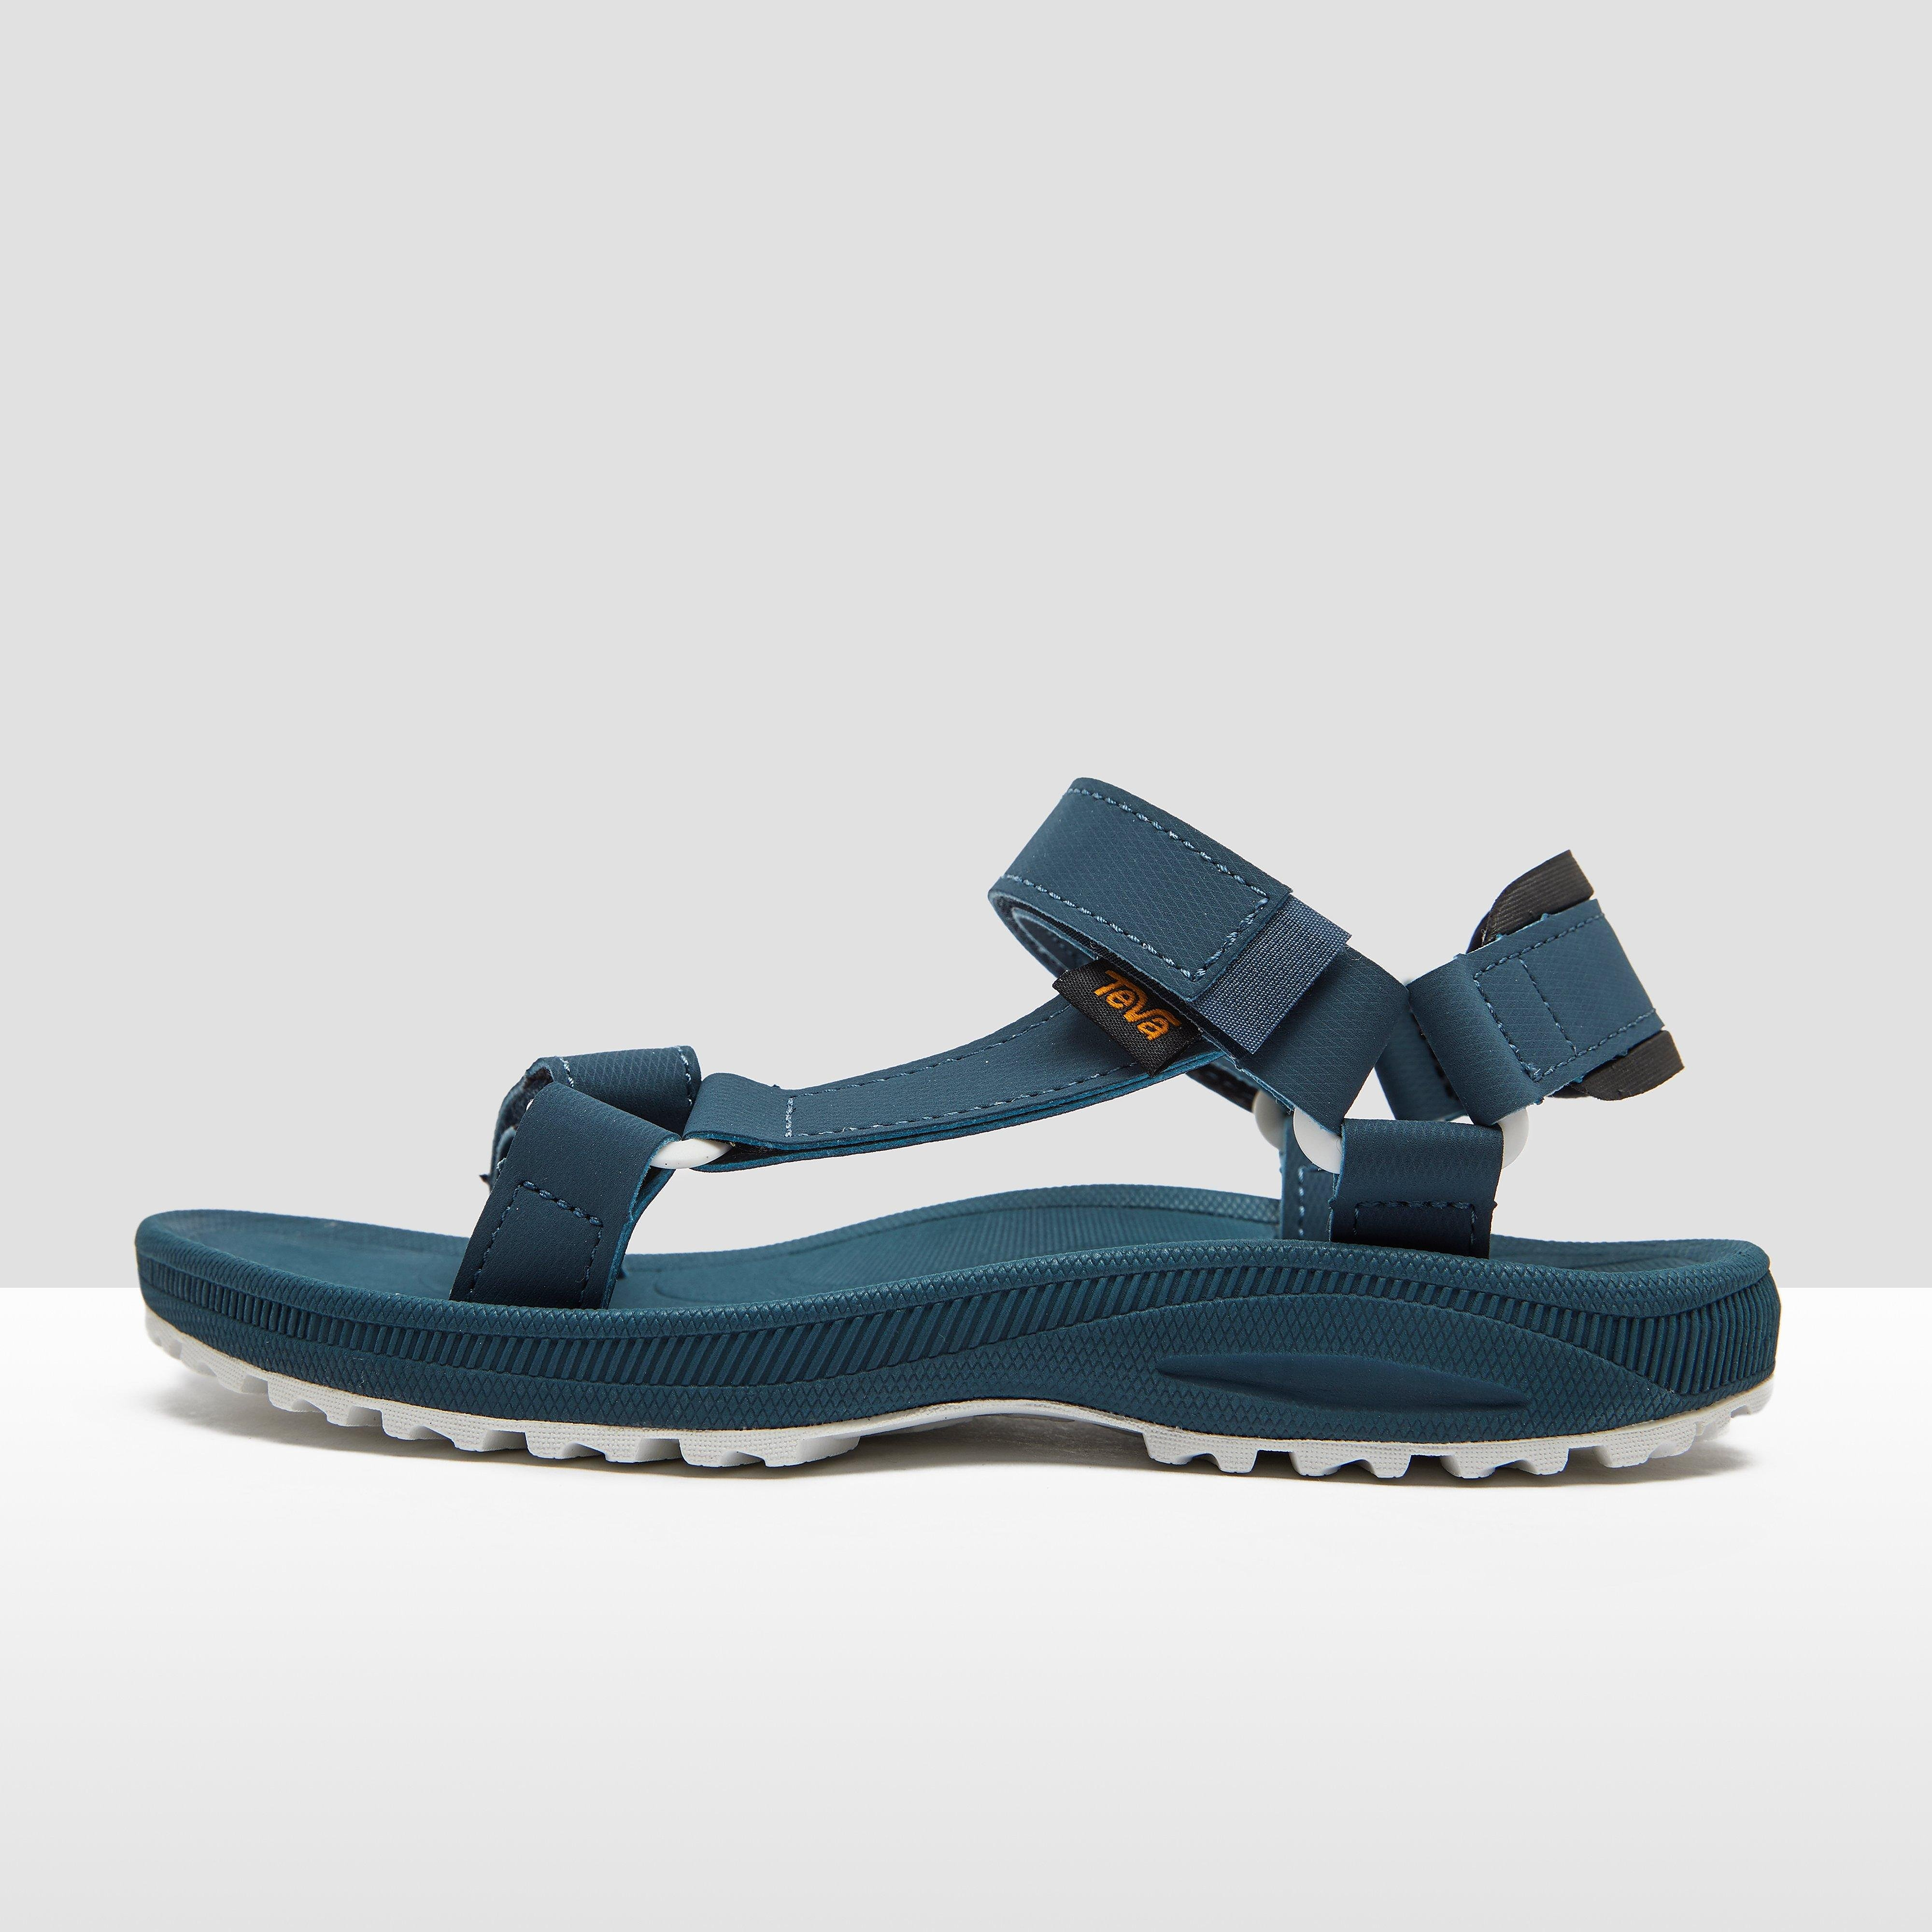 TEVA WINSTED S OUTDOOR SANDALEN BLAUW DAMES